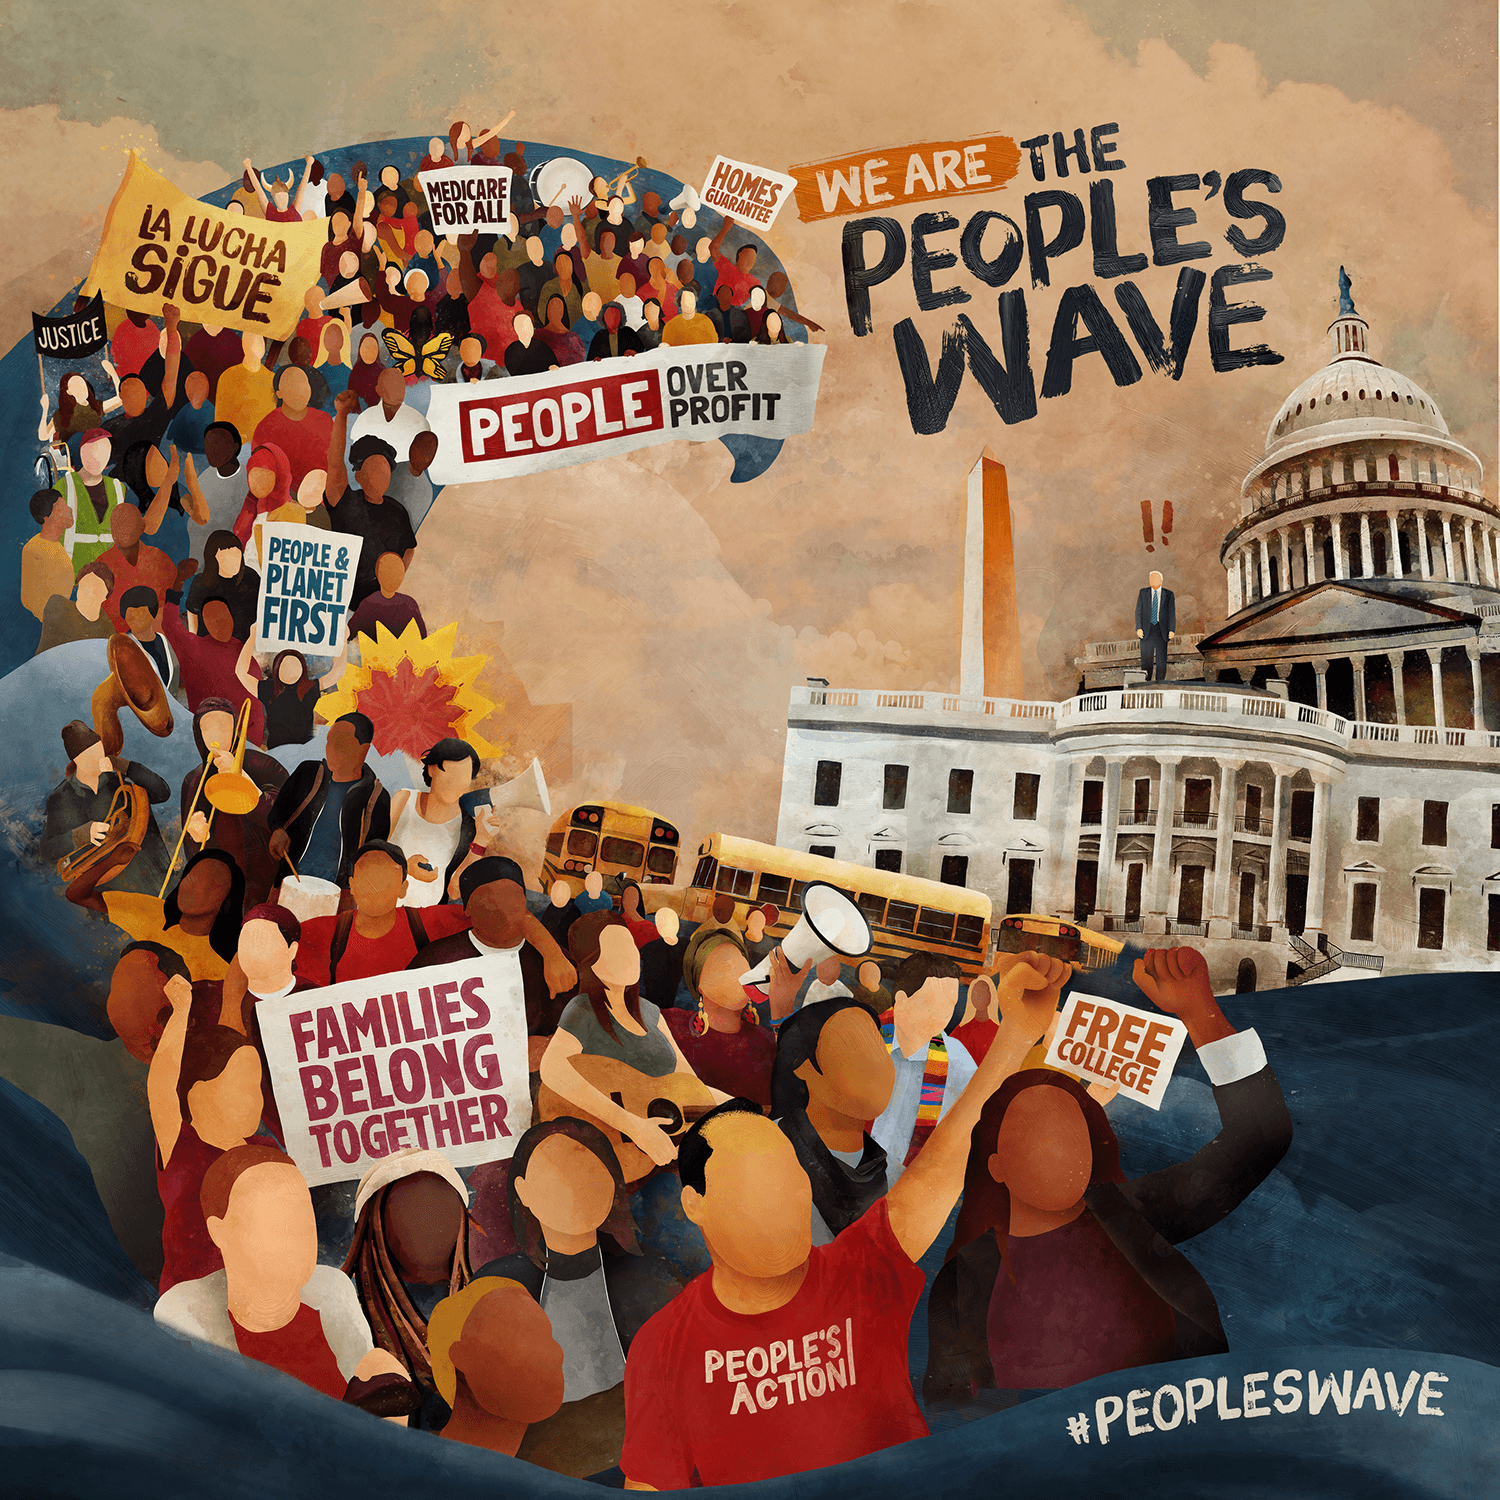 We_are_the_people's_wave